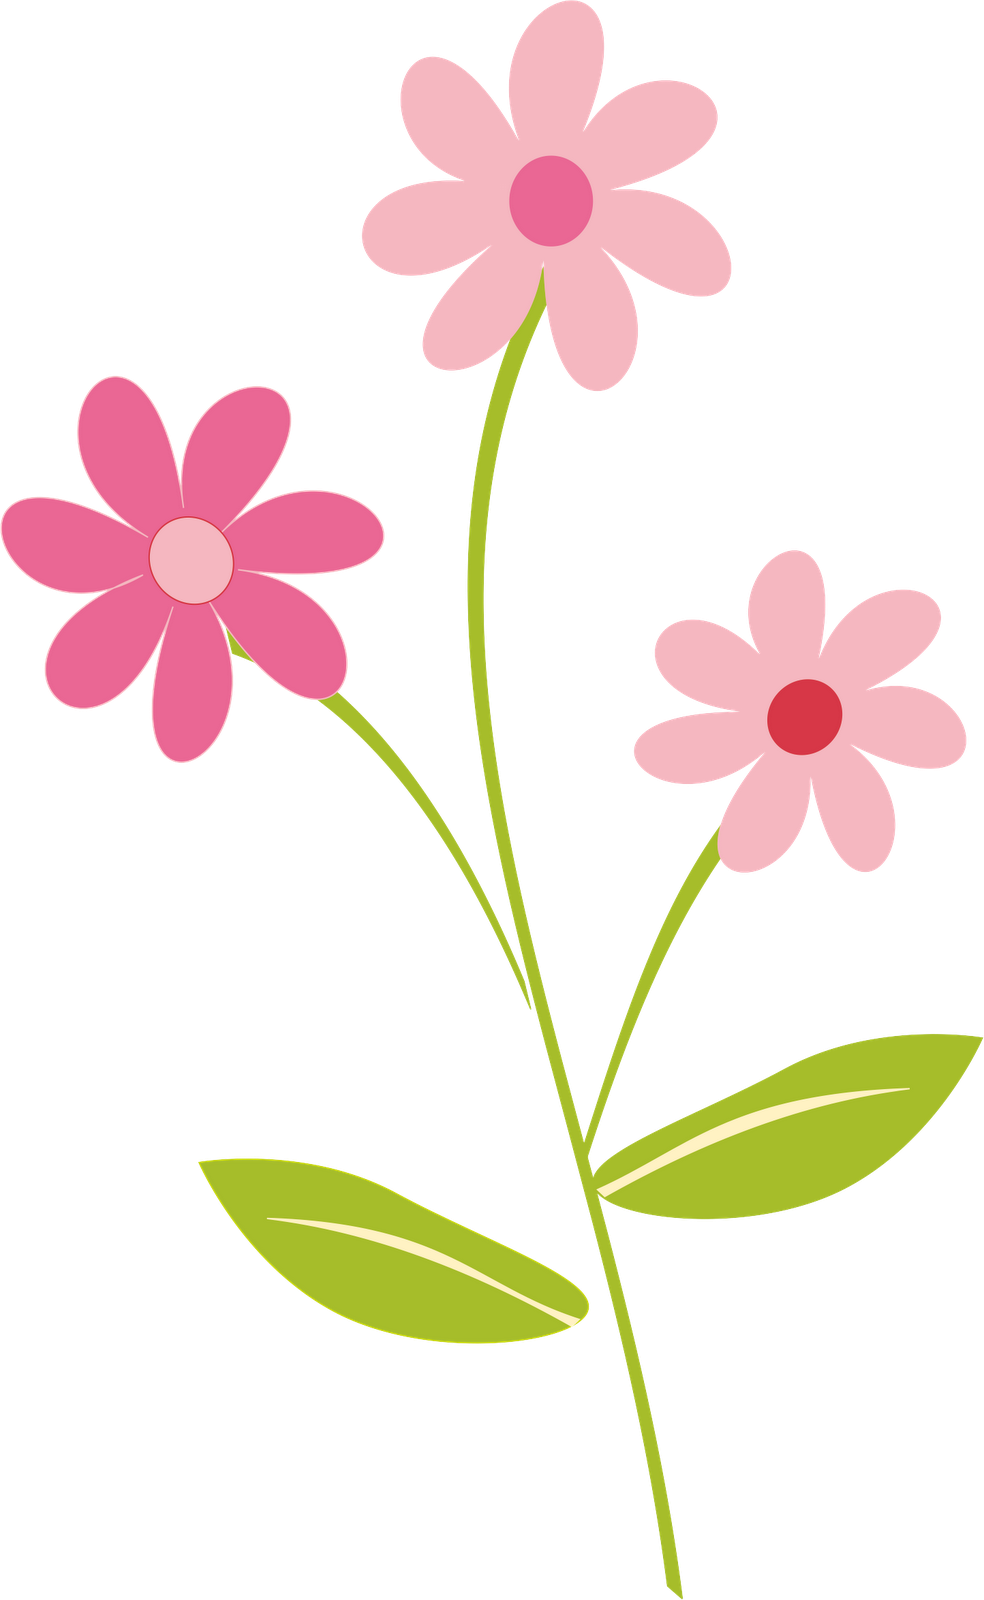 984x1600 Adorable Flower Cliparts Free Download Clip Art